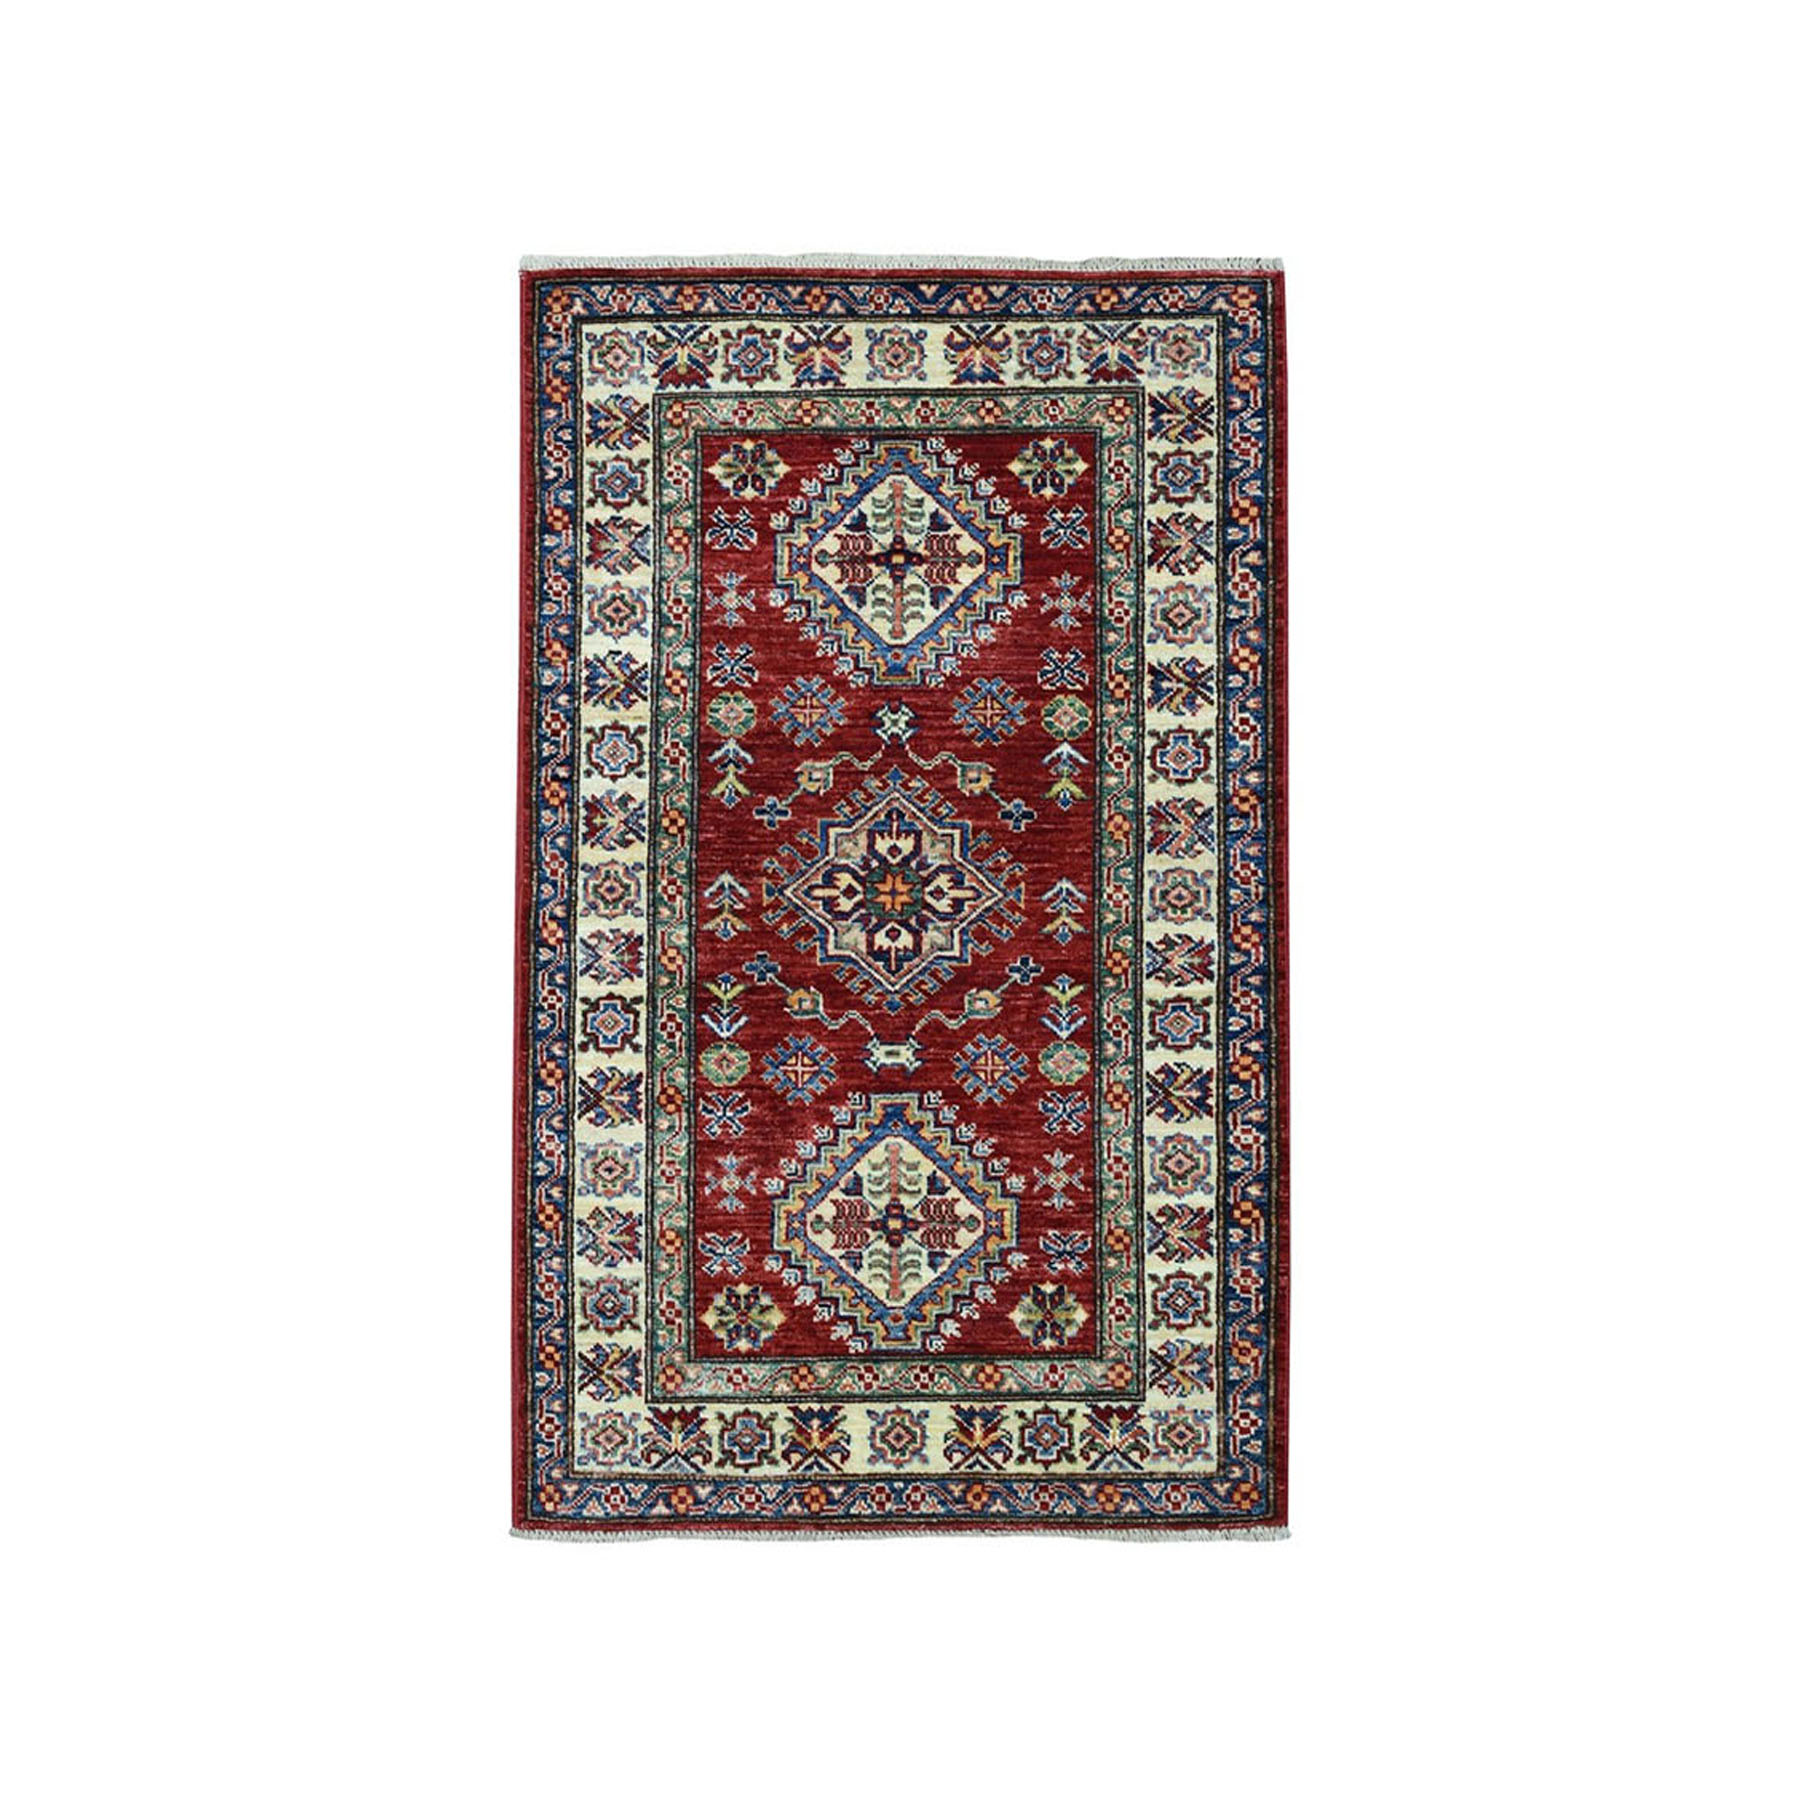 "2'6""X4'2"" Red Super Kazak Pure Wool Geometric Design Hand-Knotted Oriental Rug moae09e9"